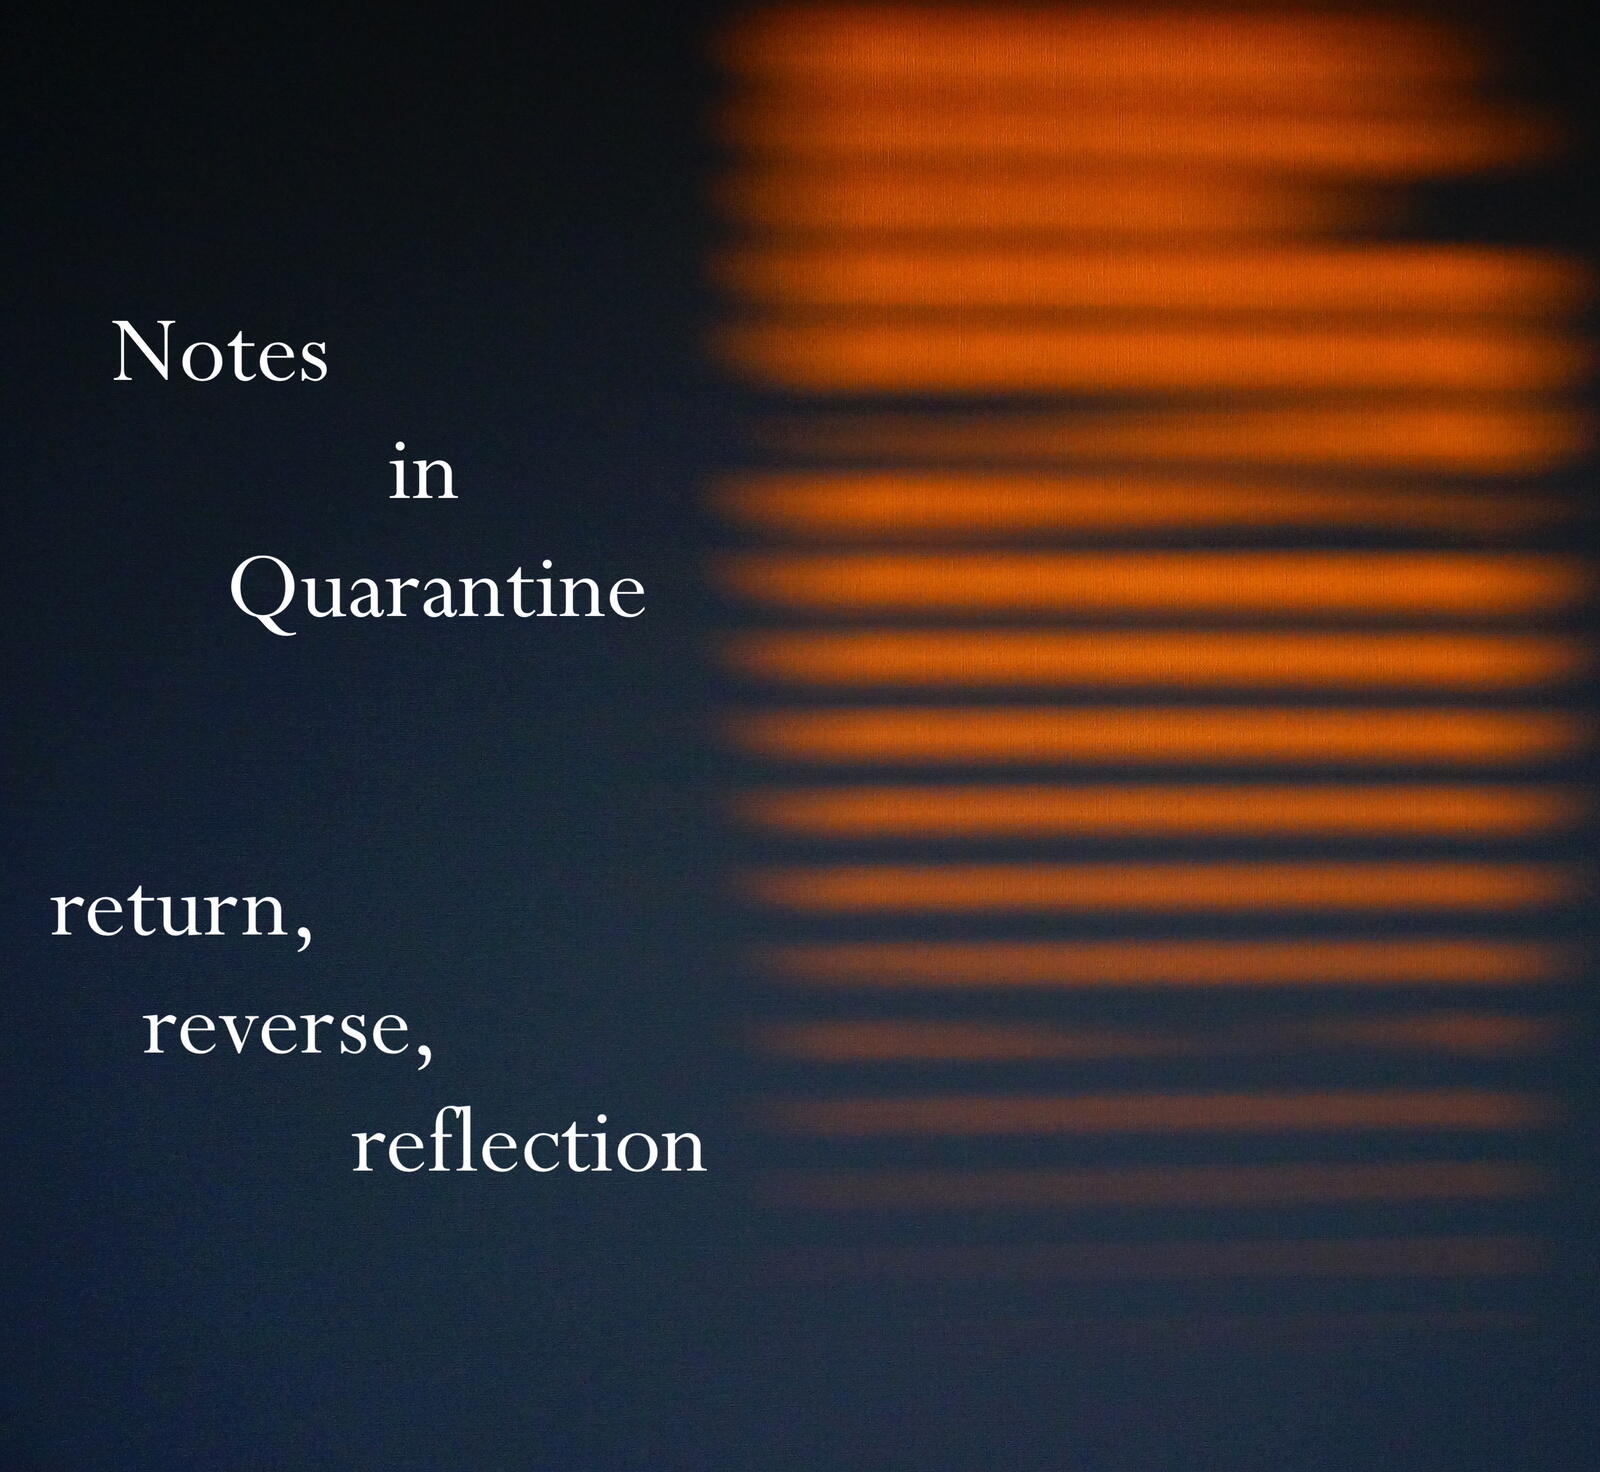 25: Notes in quarantine - return, reverse, reflection